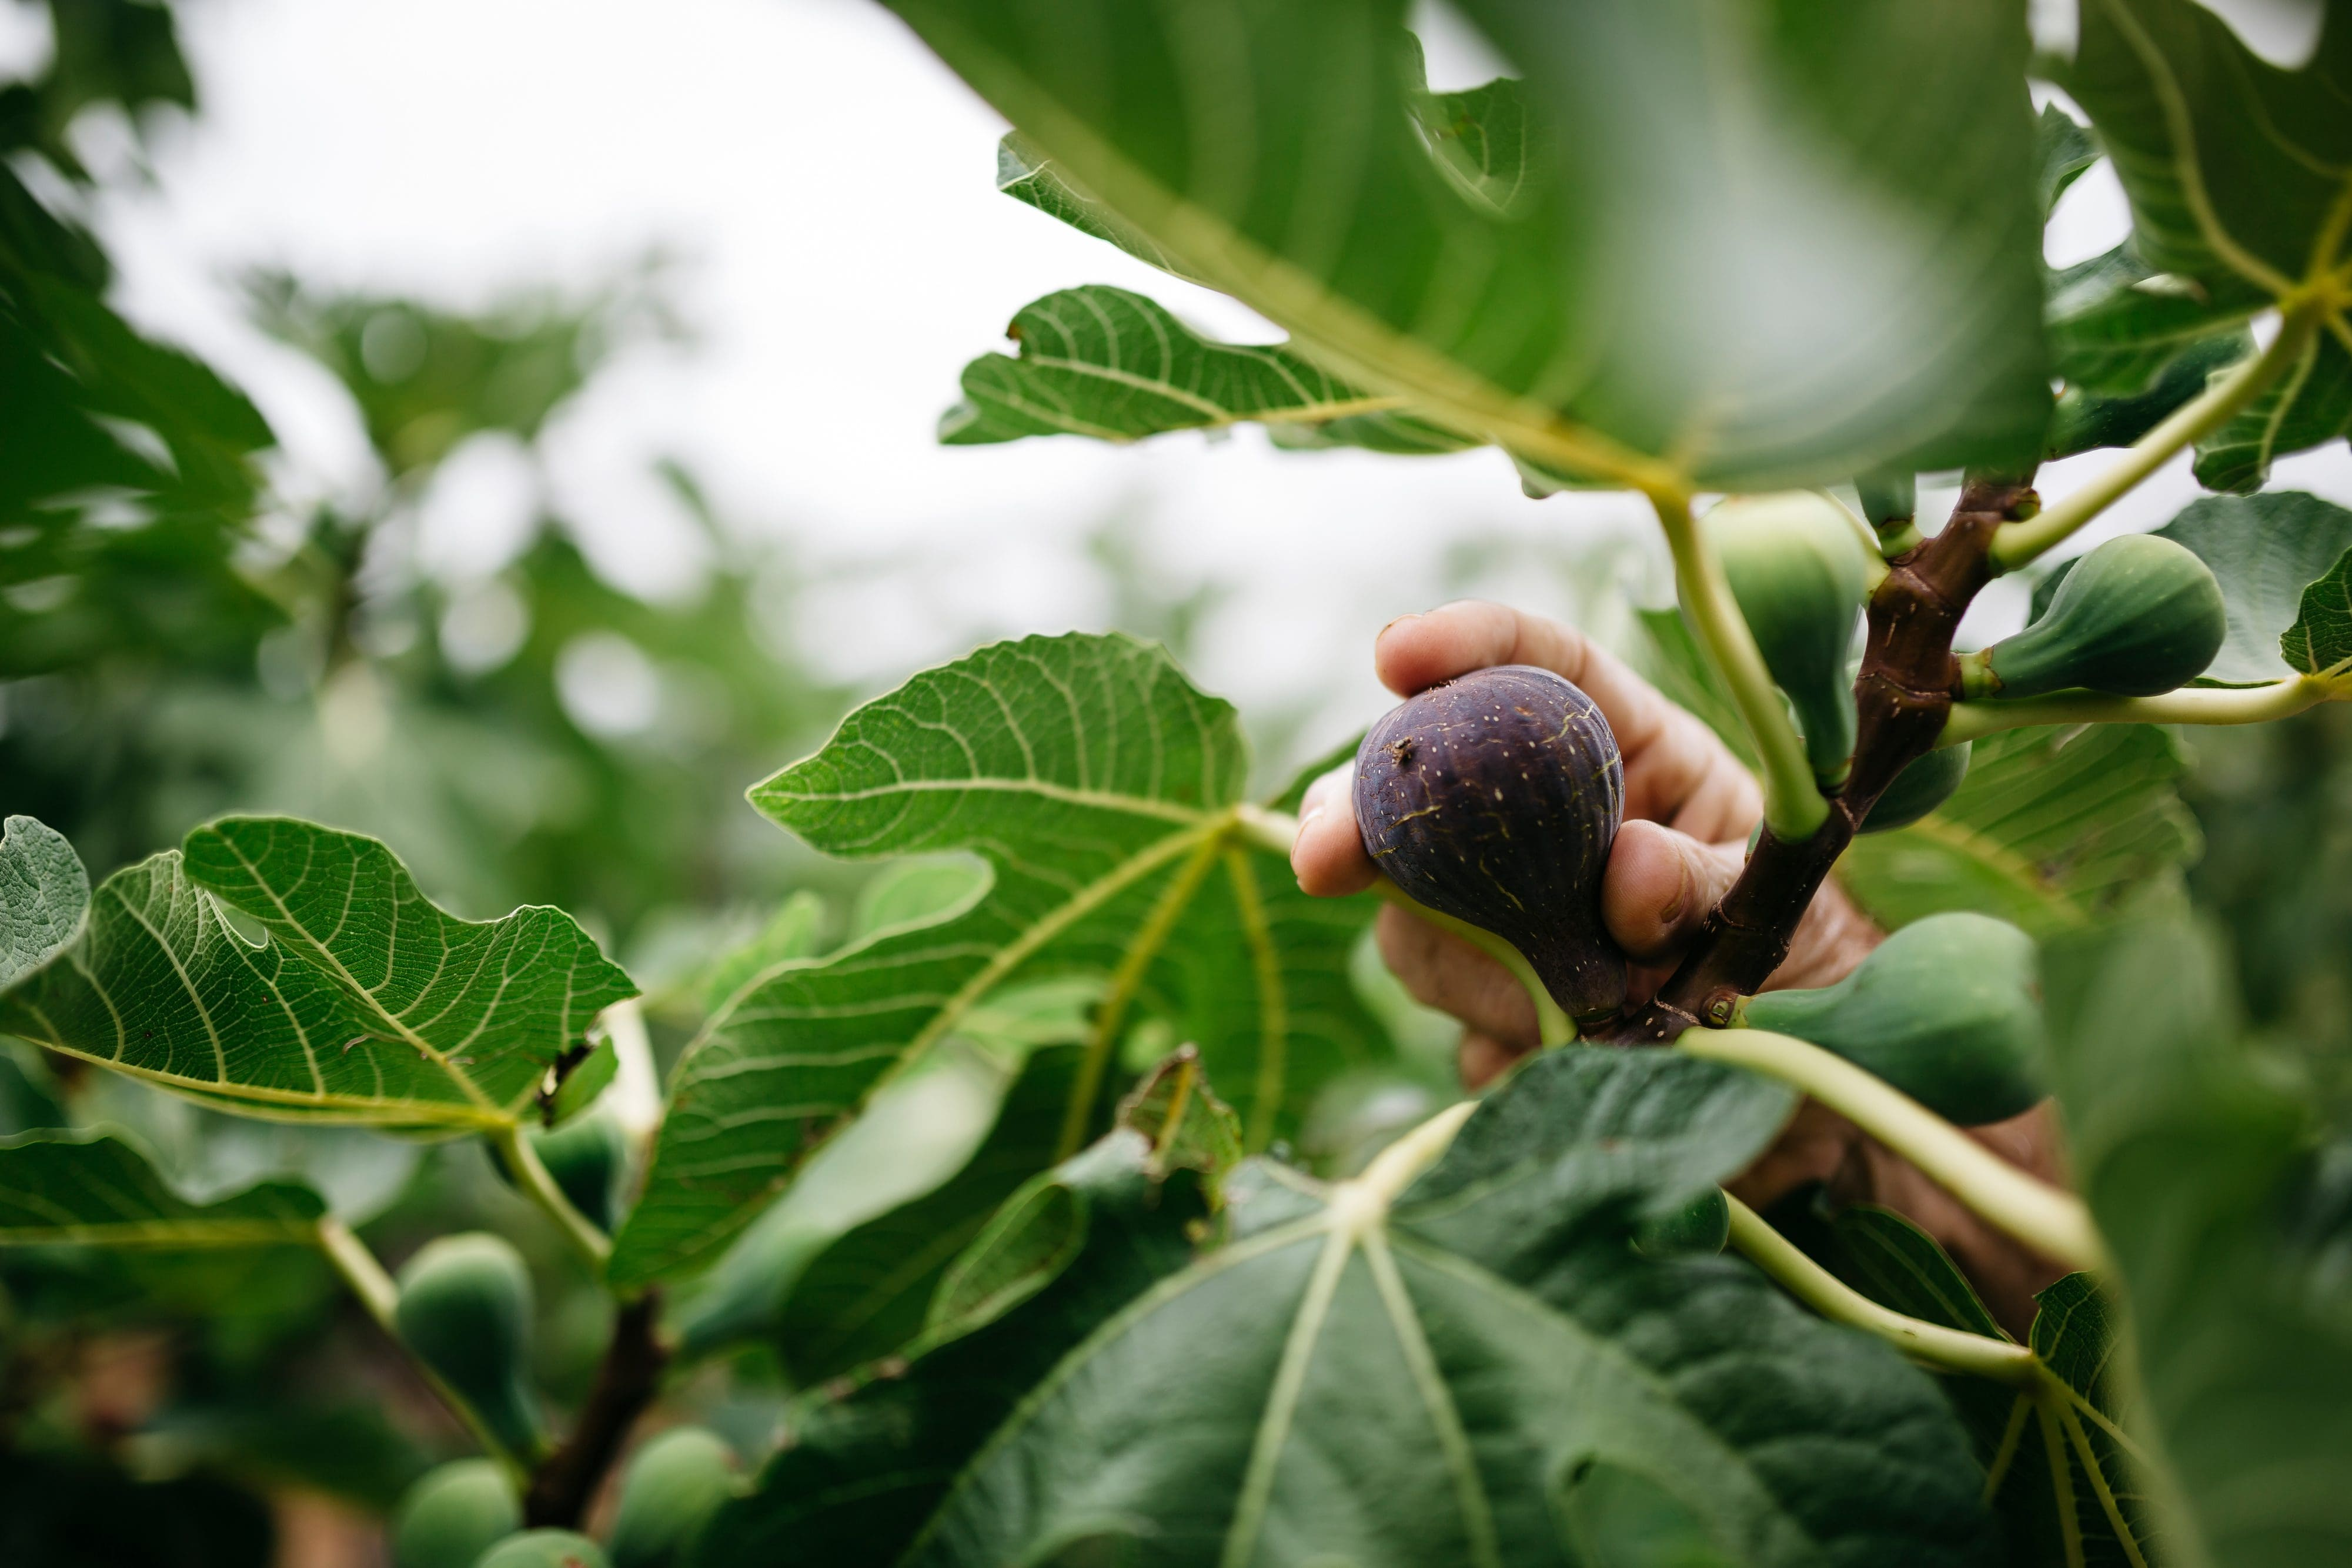 Close up of a hand picking a fig from a tree